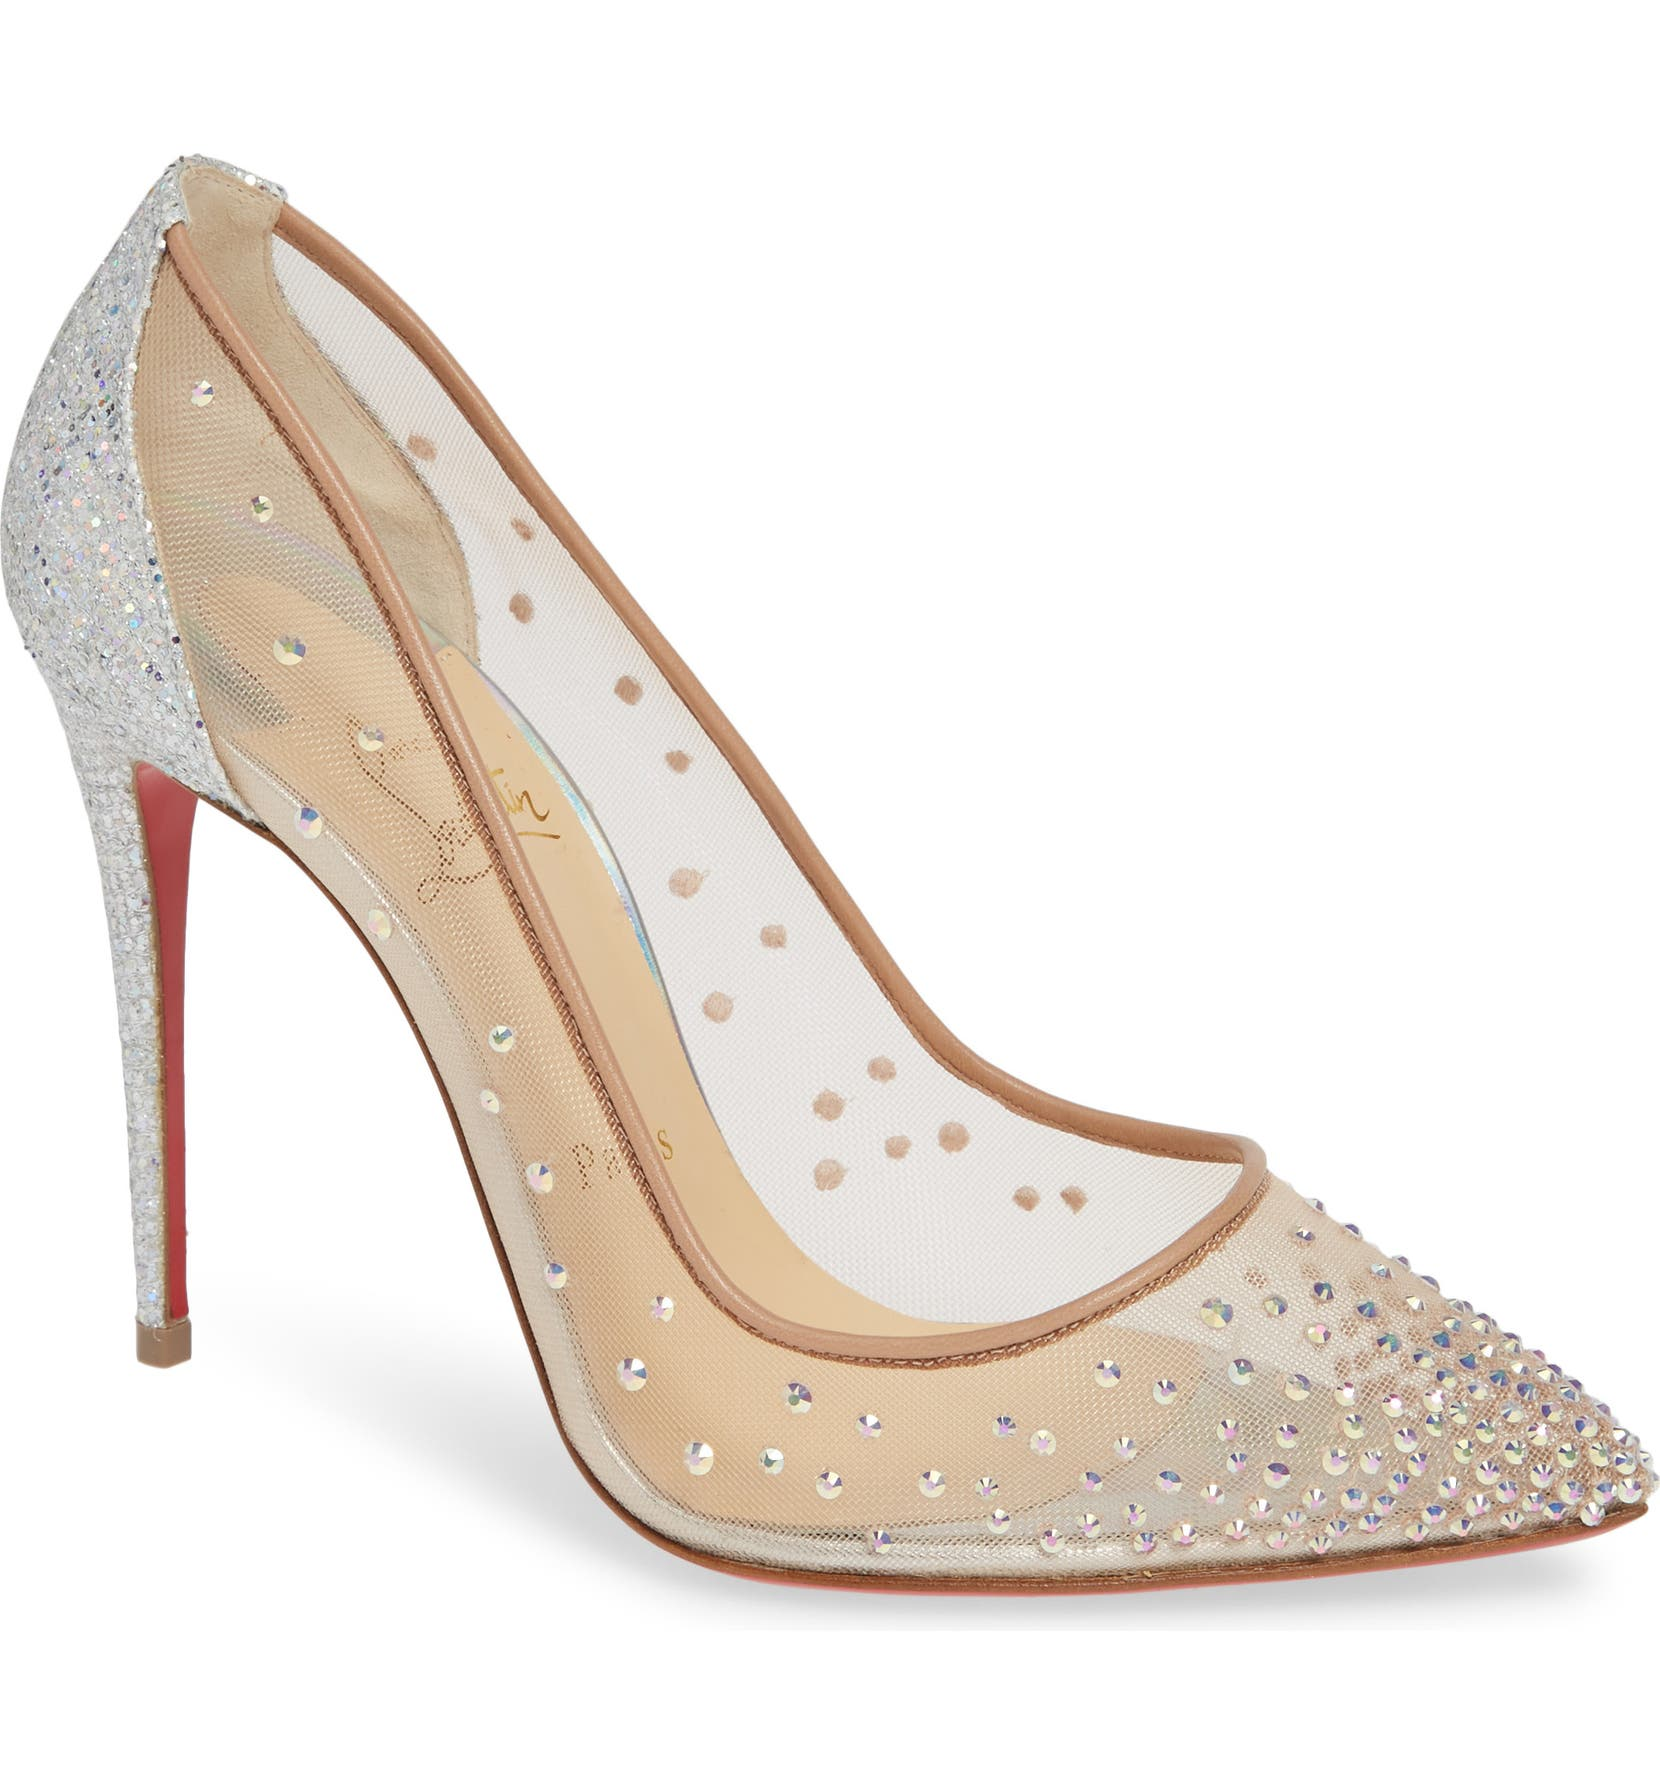 online store 4e708 53a30 Follies Strass Pointy Toe Pump